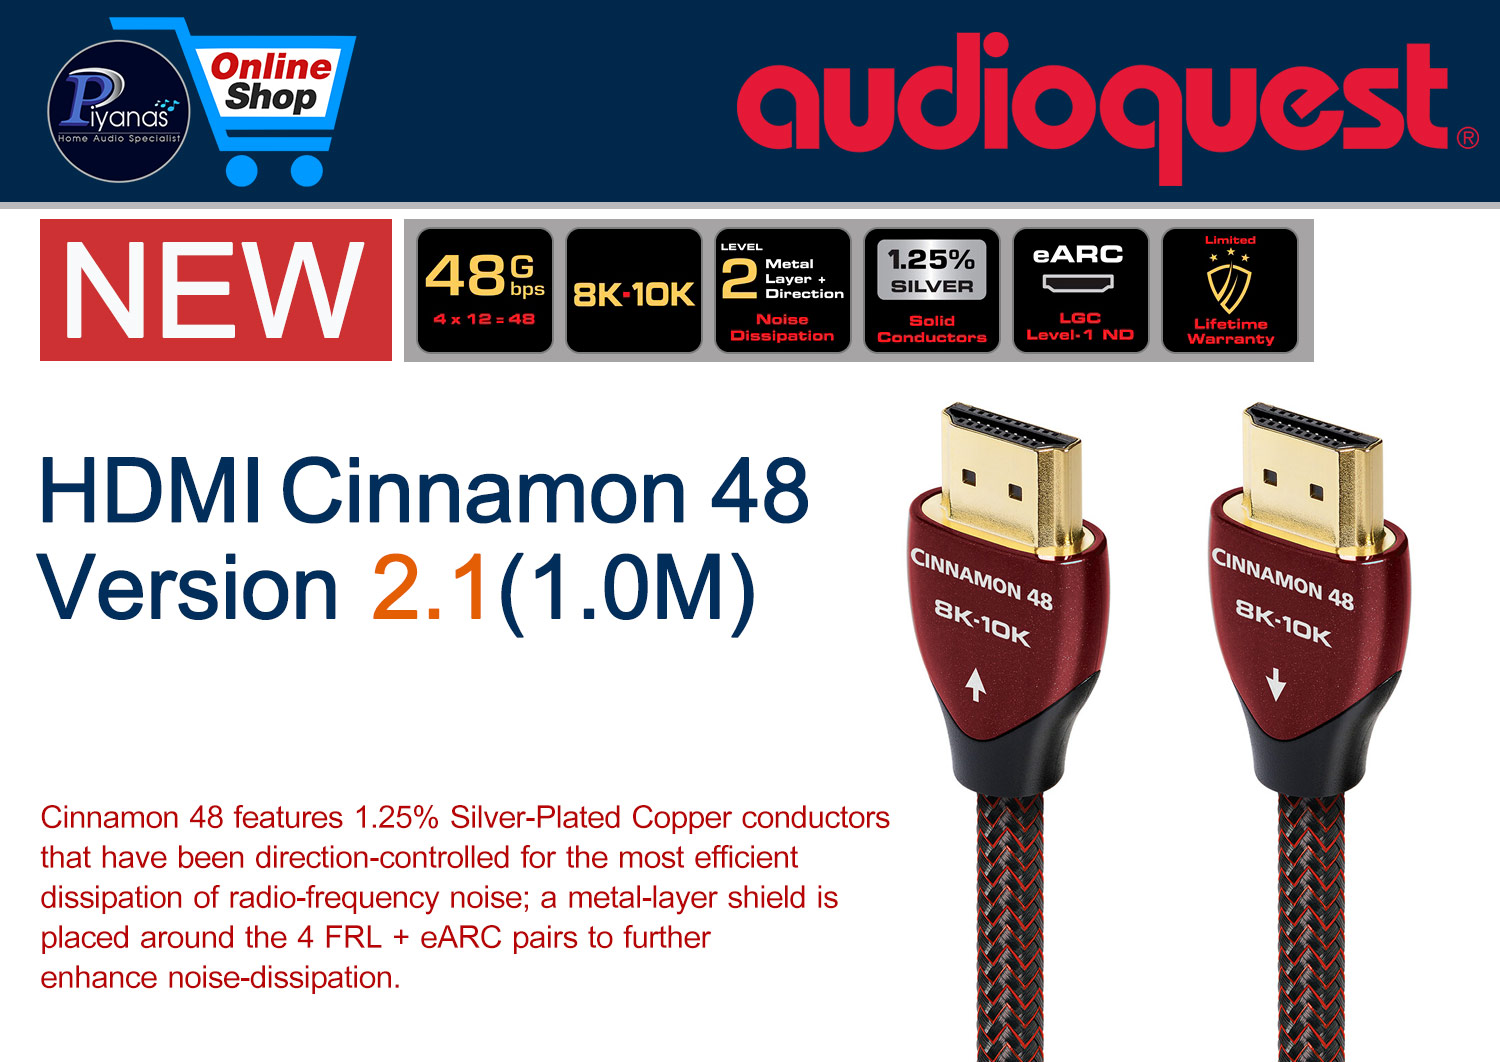 HDMI-Cinnamon 48 Version 2.1 (1.0M)